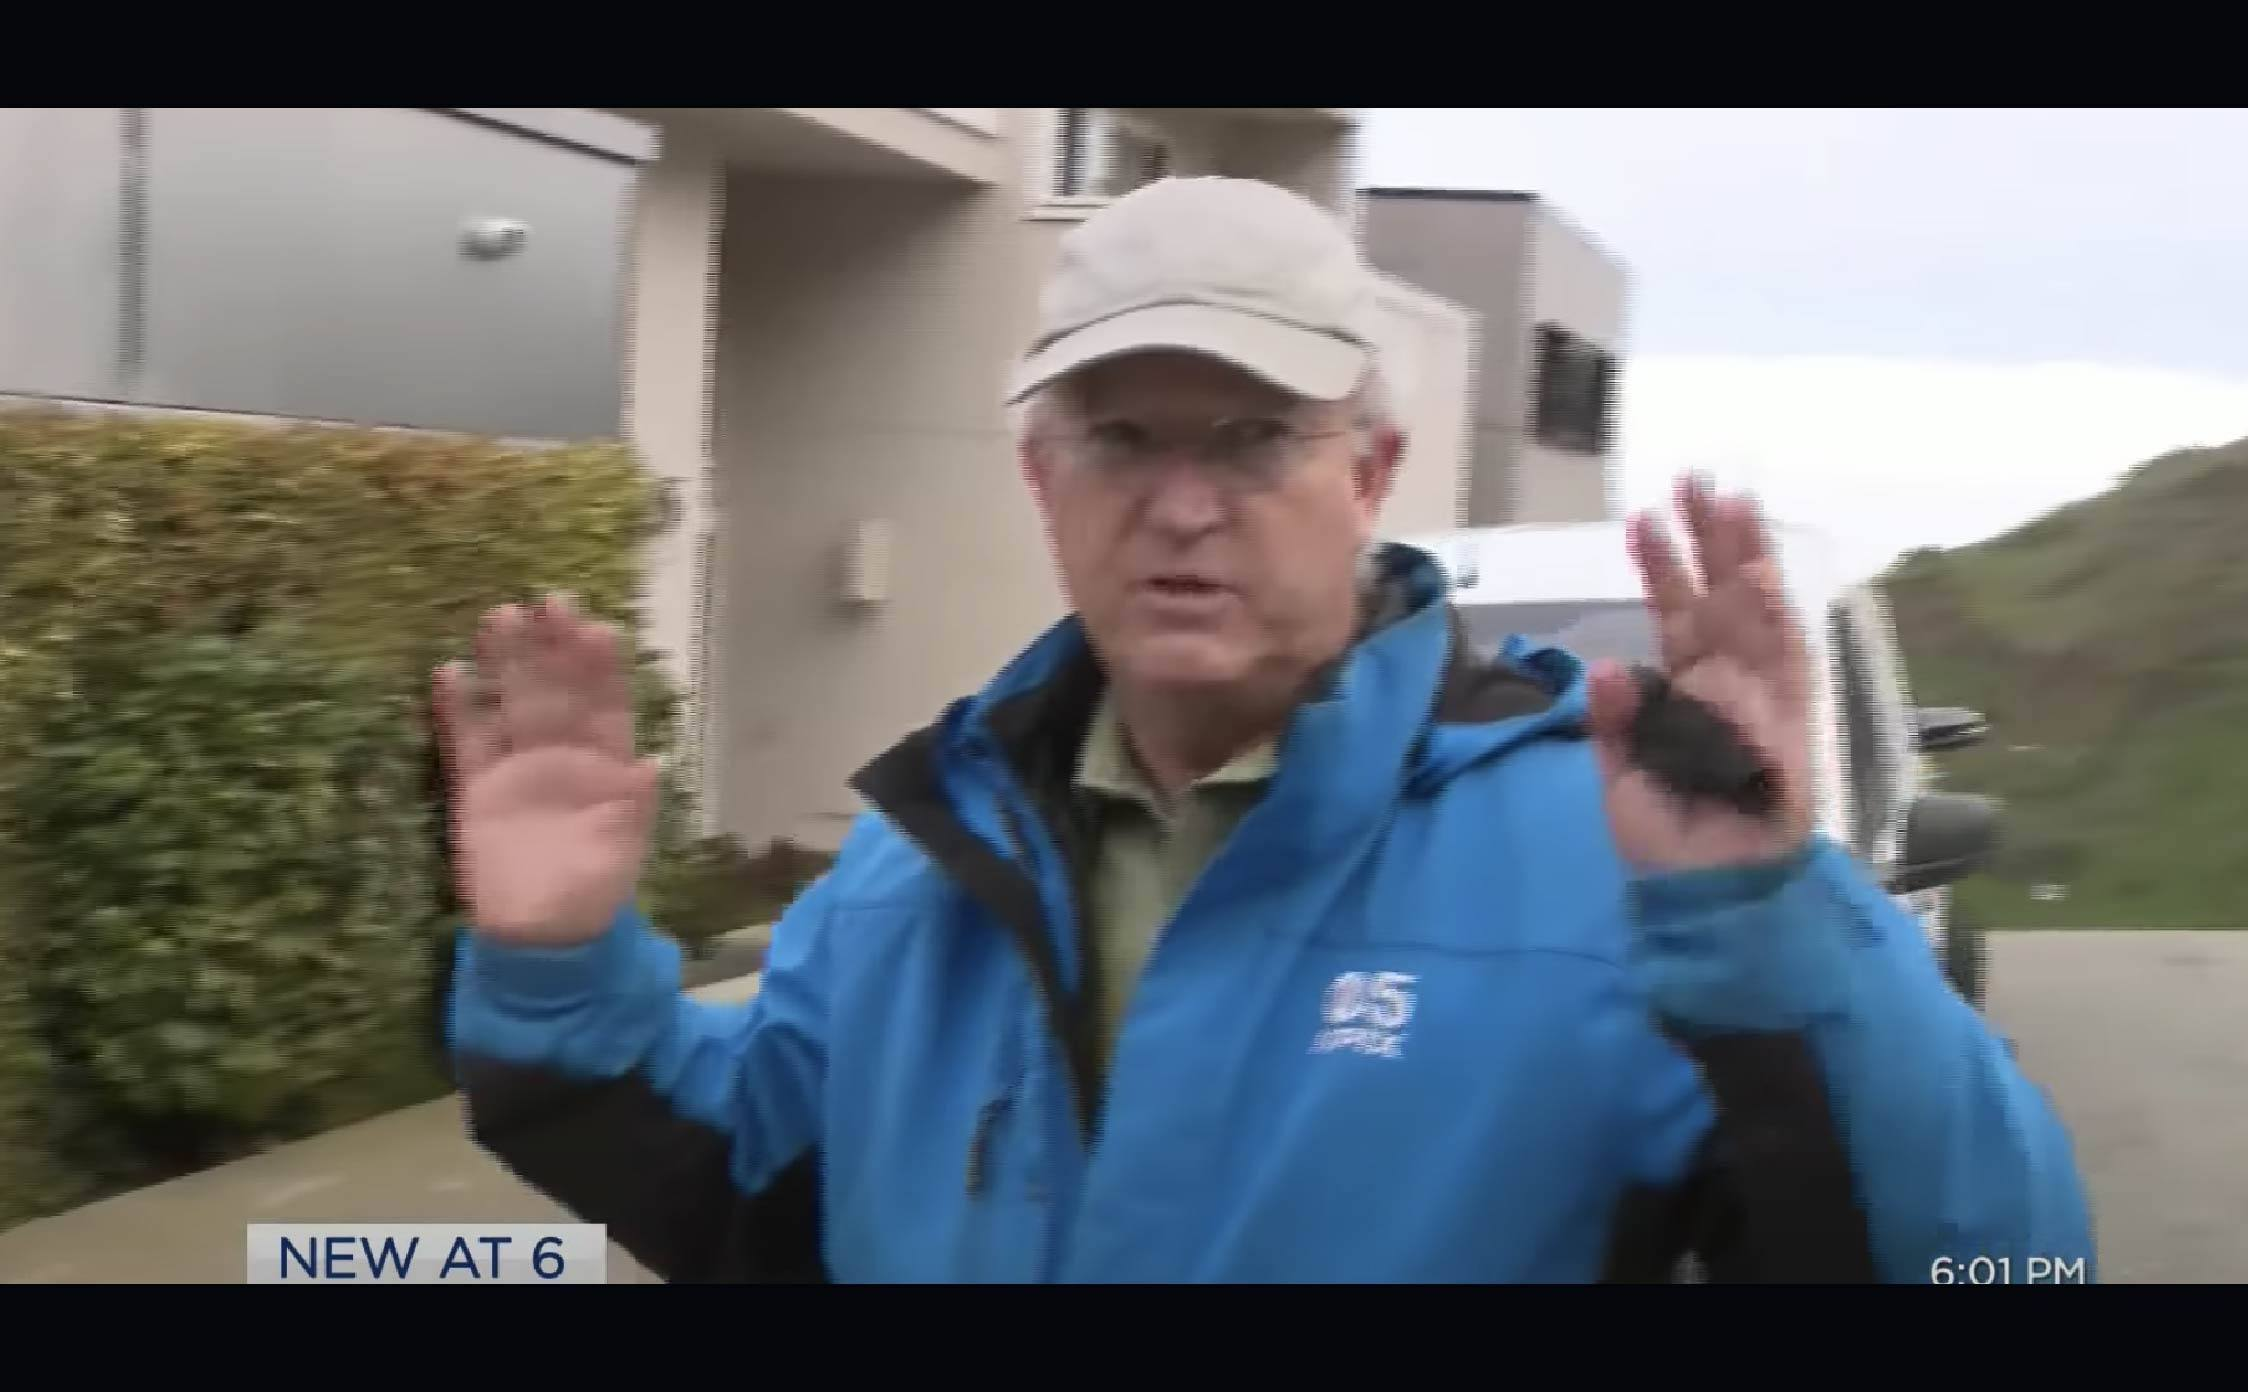 [VIDEO] Reporter Goes to San Fran to Cover Soaring Crime Wave and Gets Robbed at Gunpoint